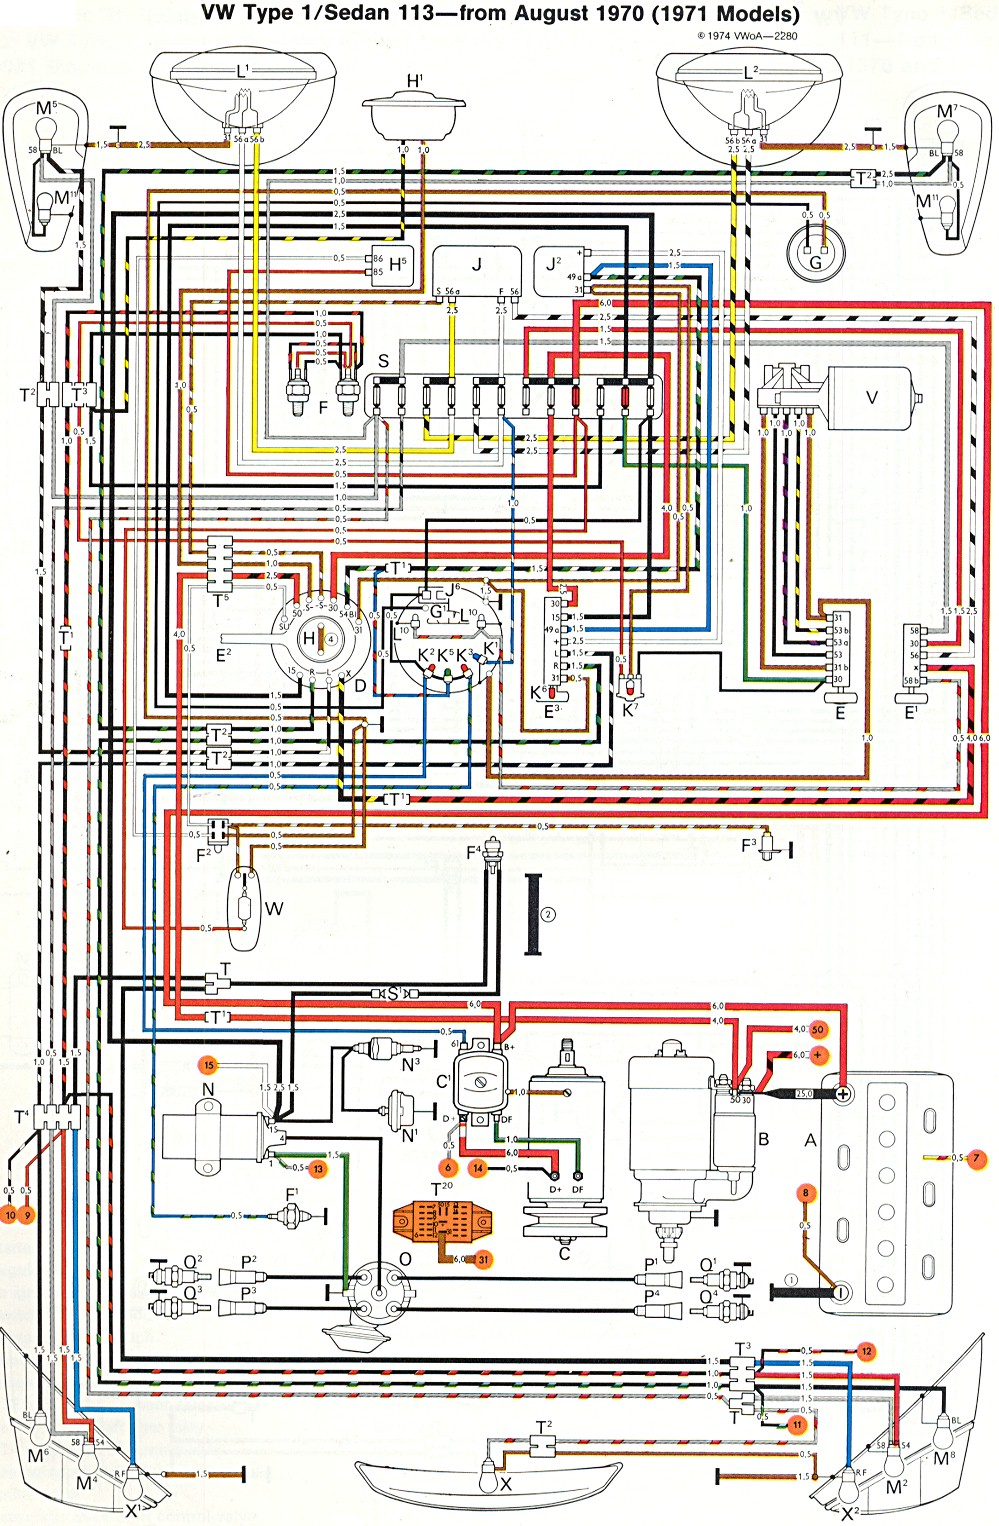 bug_super_71 1971 super beetle wiring diagram thegoldenbug com 1970 vw bug wiring diagram at panicattacktreatment.co